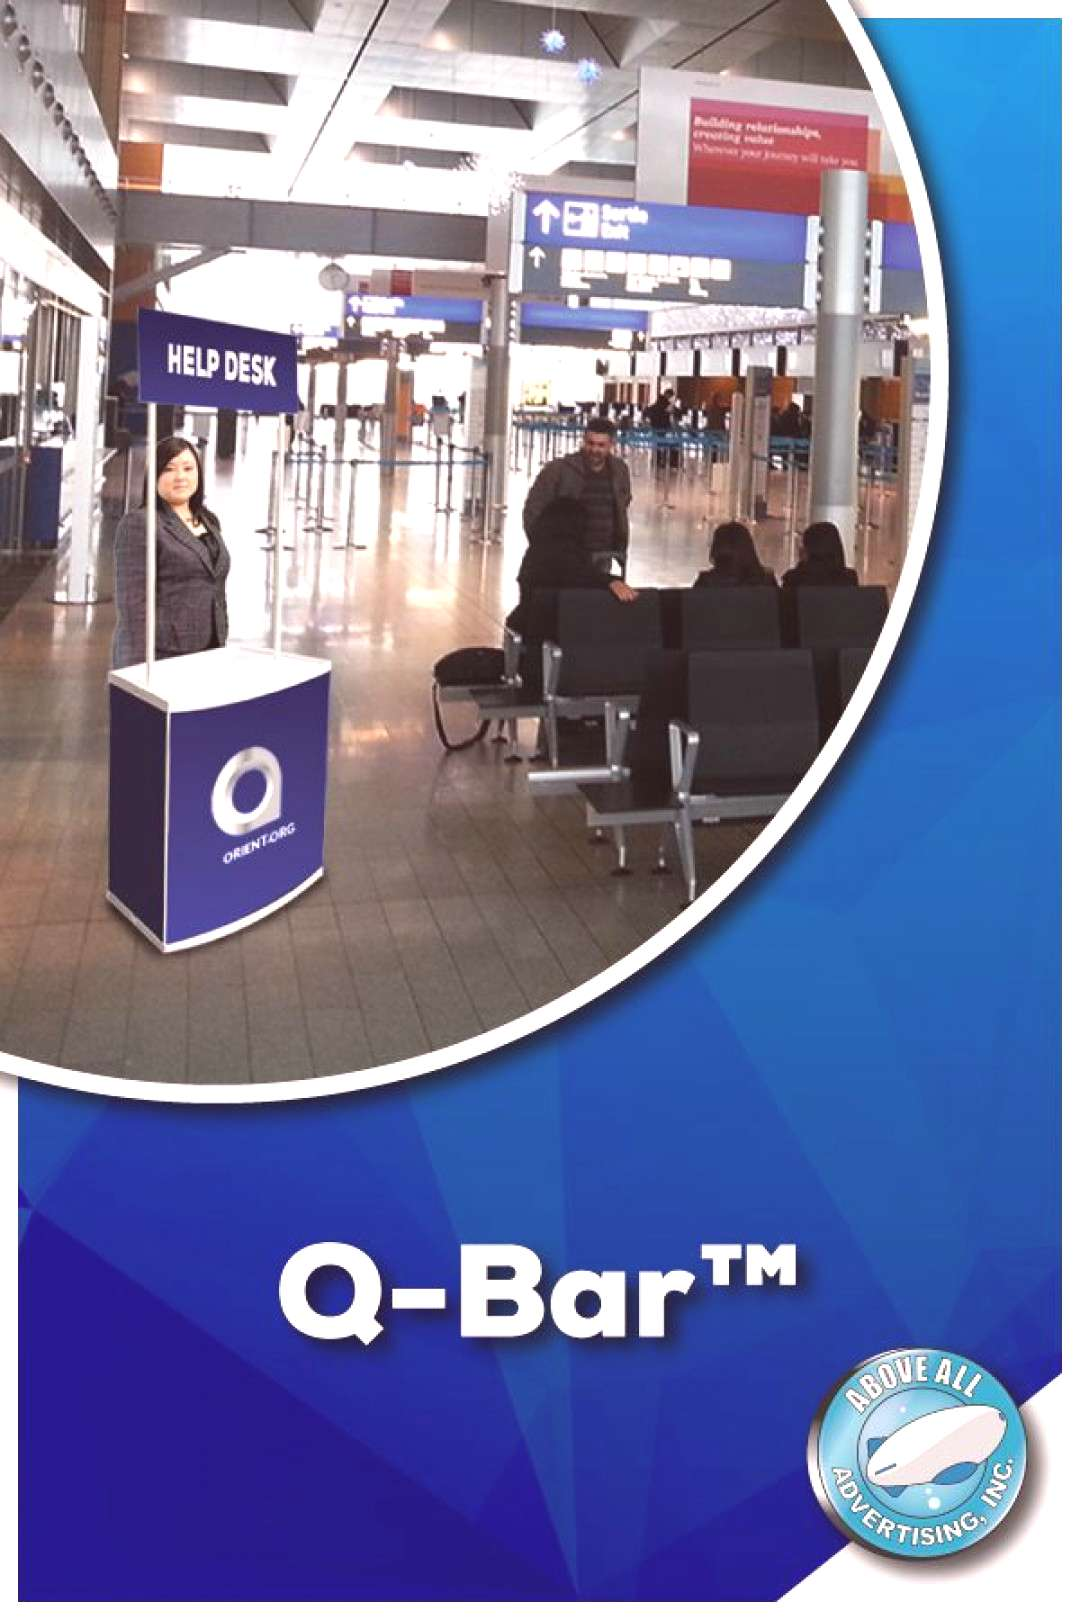 Q-Bar™ Setting up help-booths has never been easier! The sophisticated amp convenient Q-Bar™ feat